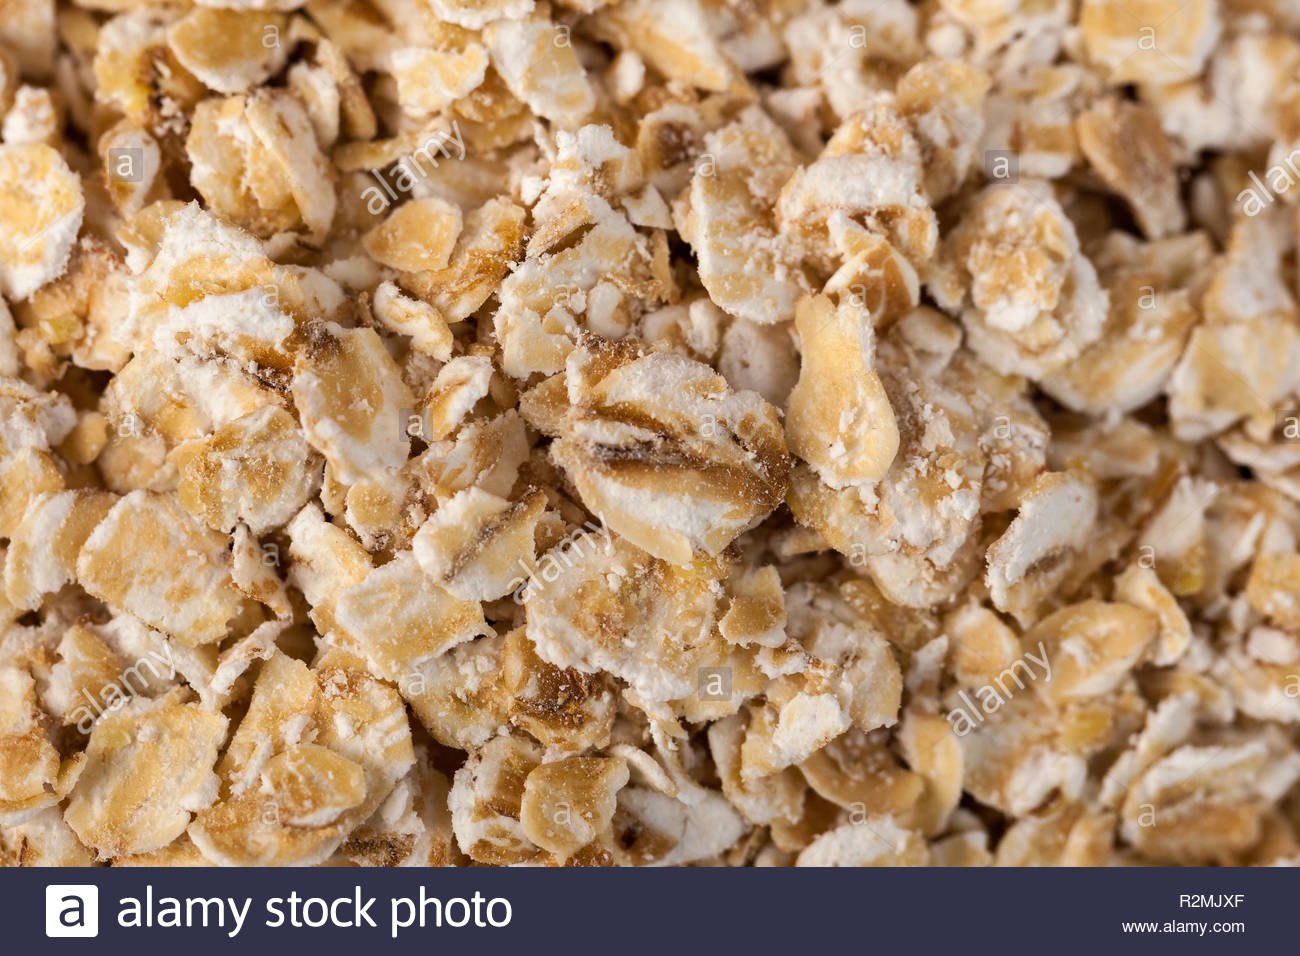 Rolled oats background Organic oatmeal background texture macro 1300x956